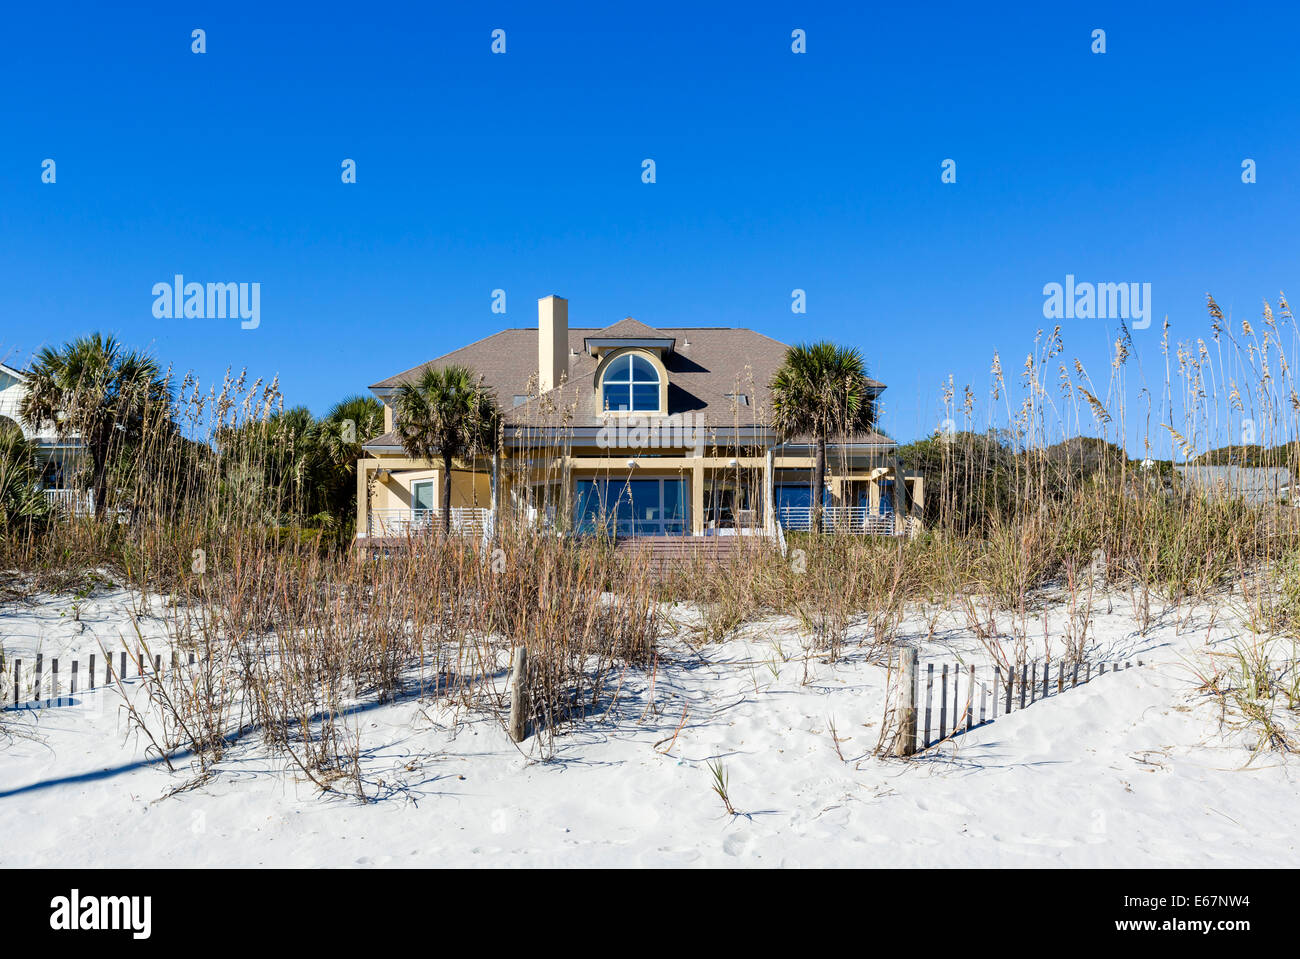 Typical beachfront house at the northern end of Myrtle Beach, South Carolina, USA - Stock Image